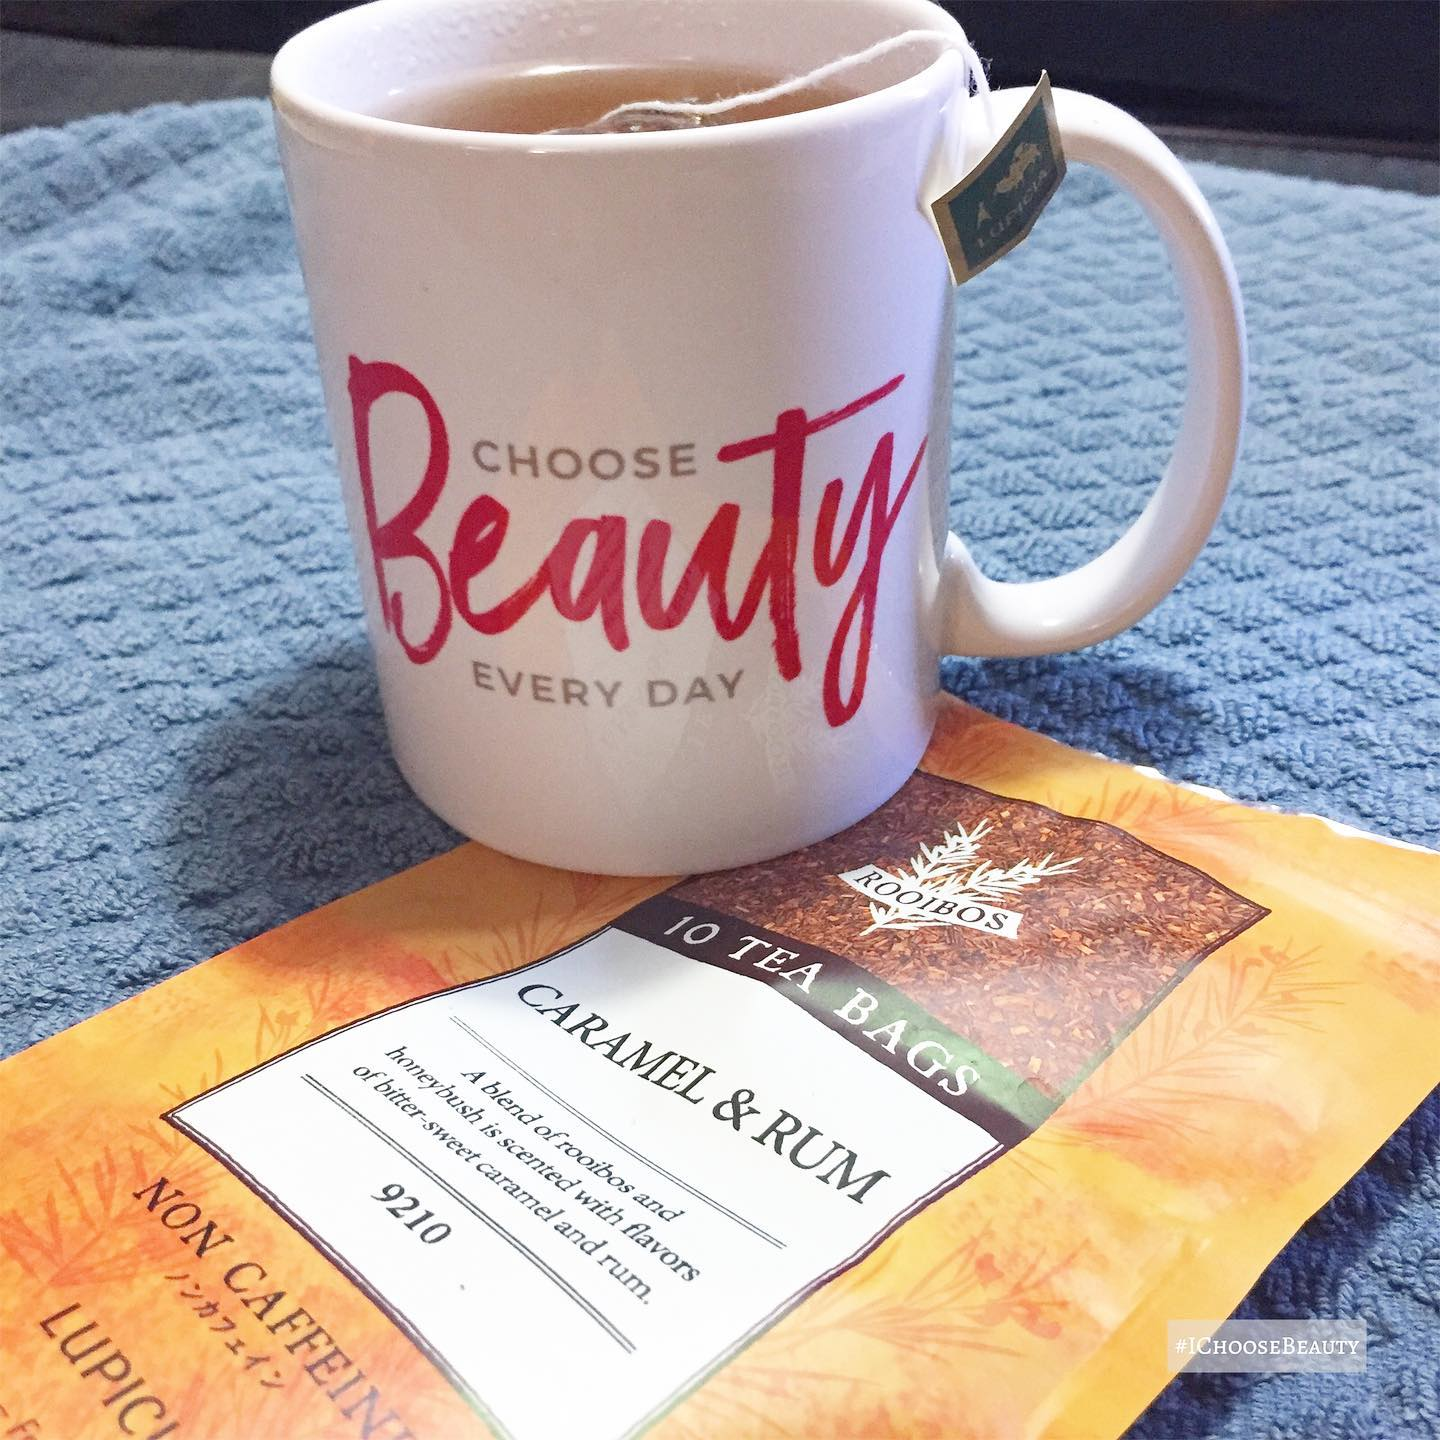 In case you're wondering... Yes, the @ichoose.beauty shop is still open. Yes, the #ichoosebeauty challenge is still available. And OMG yassssss, this tea is super yummy!I know I've been a bit absent for several weeks with a lot of my usual info. But I hope to be back to writing more, and hanging out in Stories again next week. 🏽Also... Can't wait to share something fun I've been working on to brighten up your life as we head into month 15 of 2020.  🥴 xxoo #ichoosebeauty Day 2656